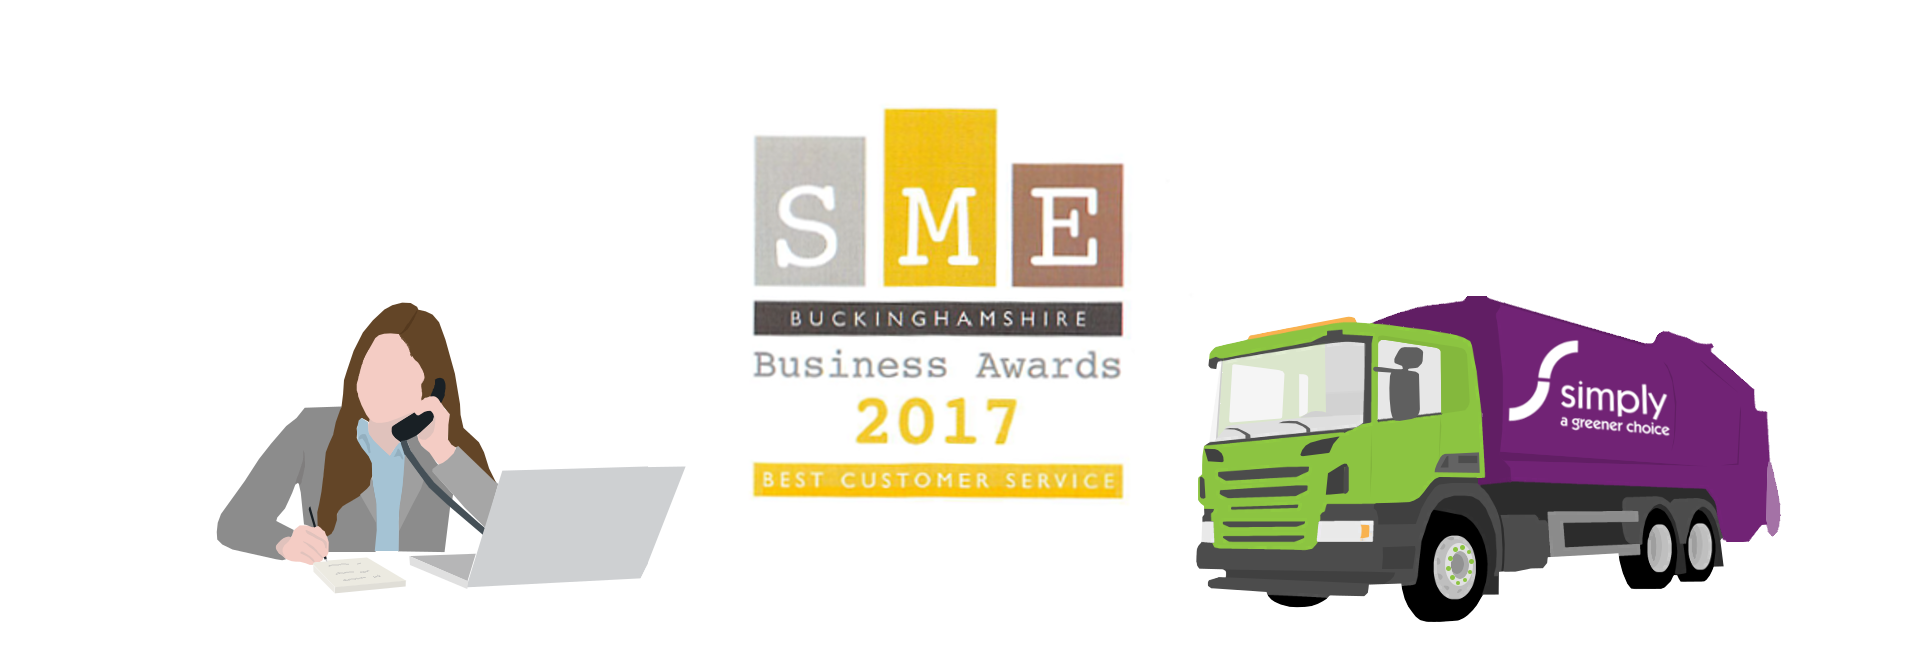 SME Buckinghamshire Business Awards 2017